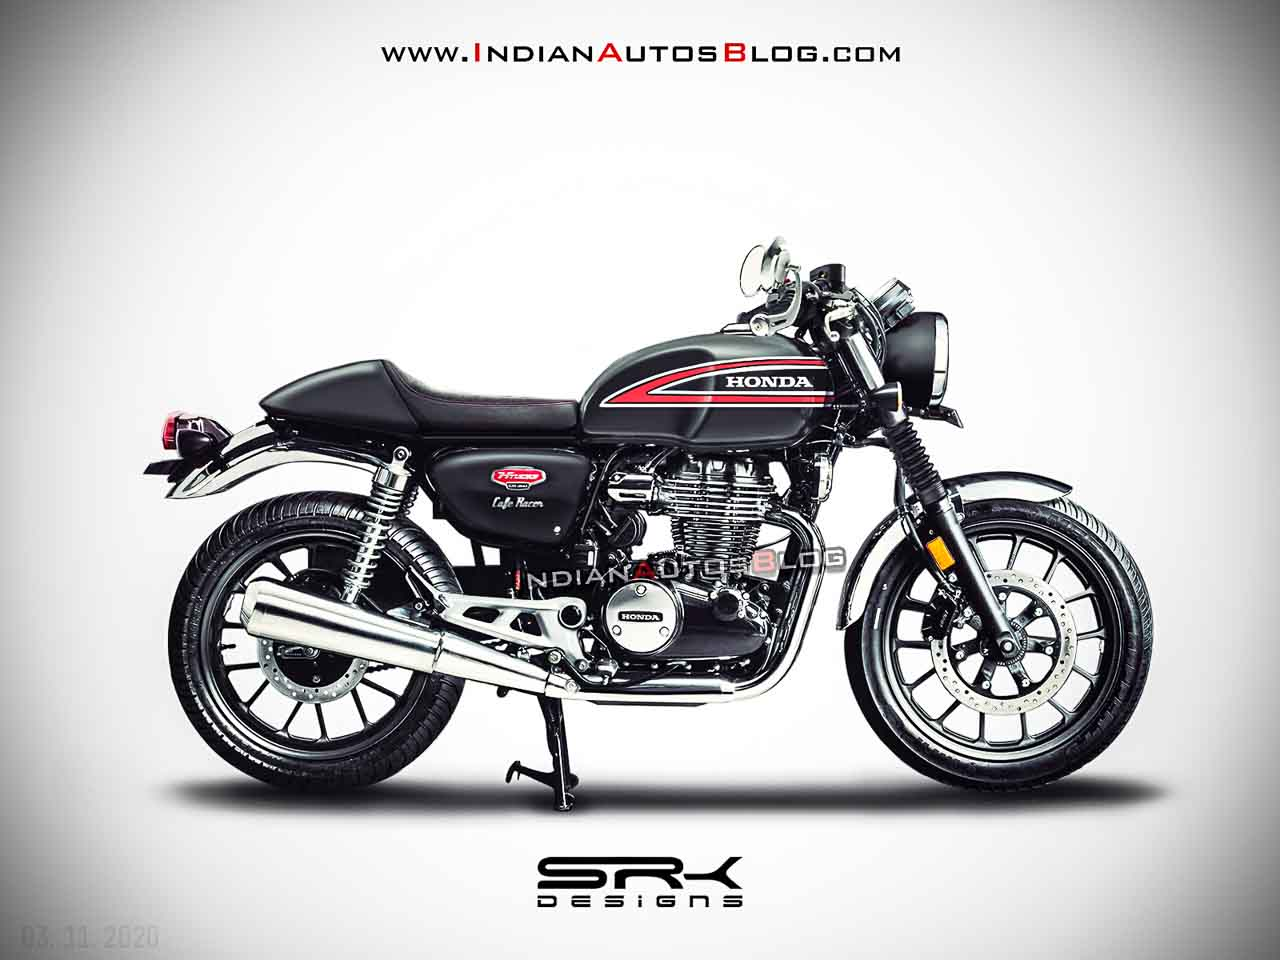 Honda Cb350 Cafe Racer May Be Launched Next Year India News Republic